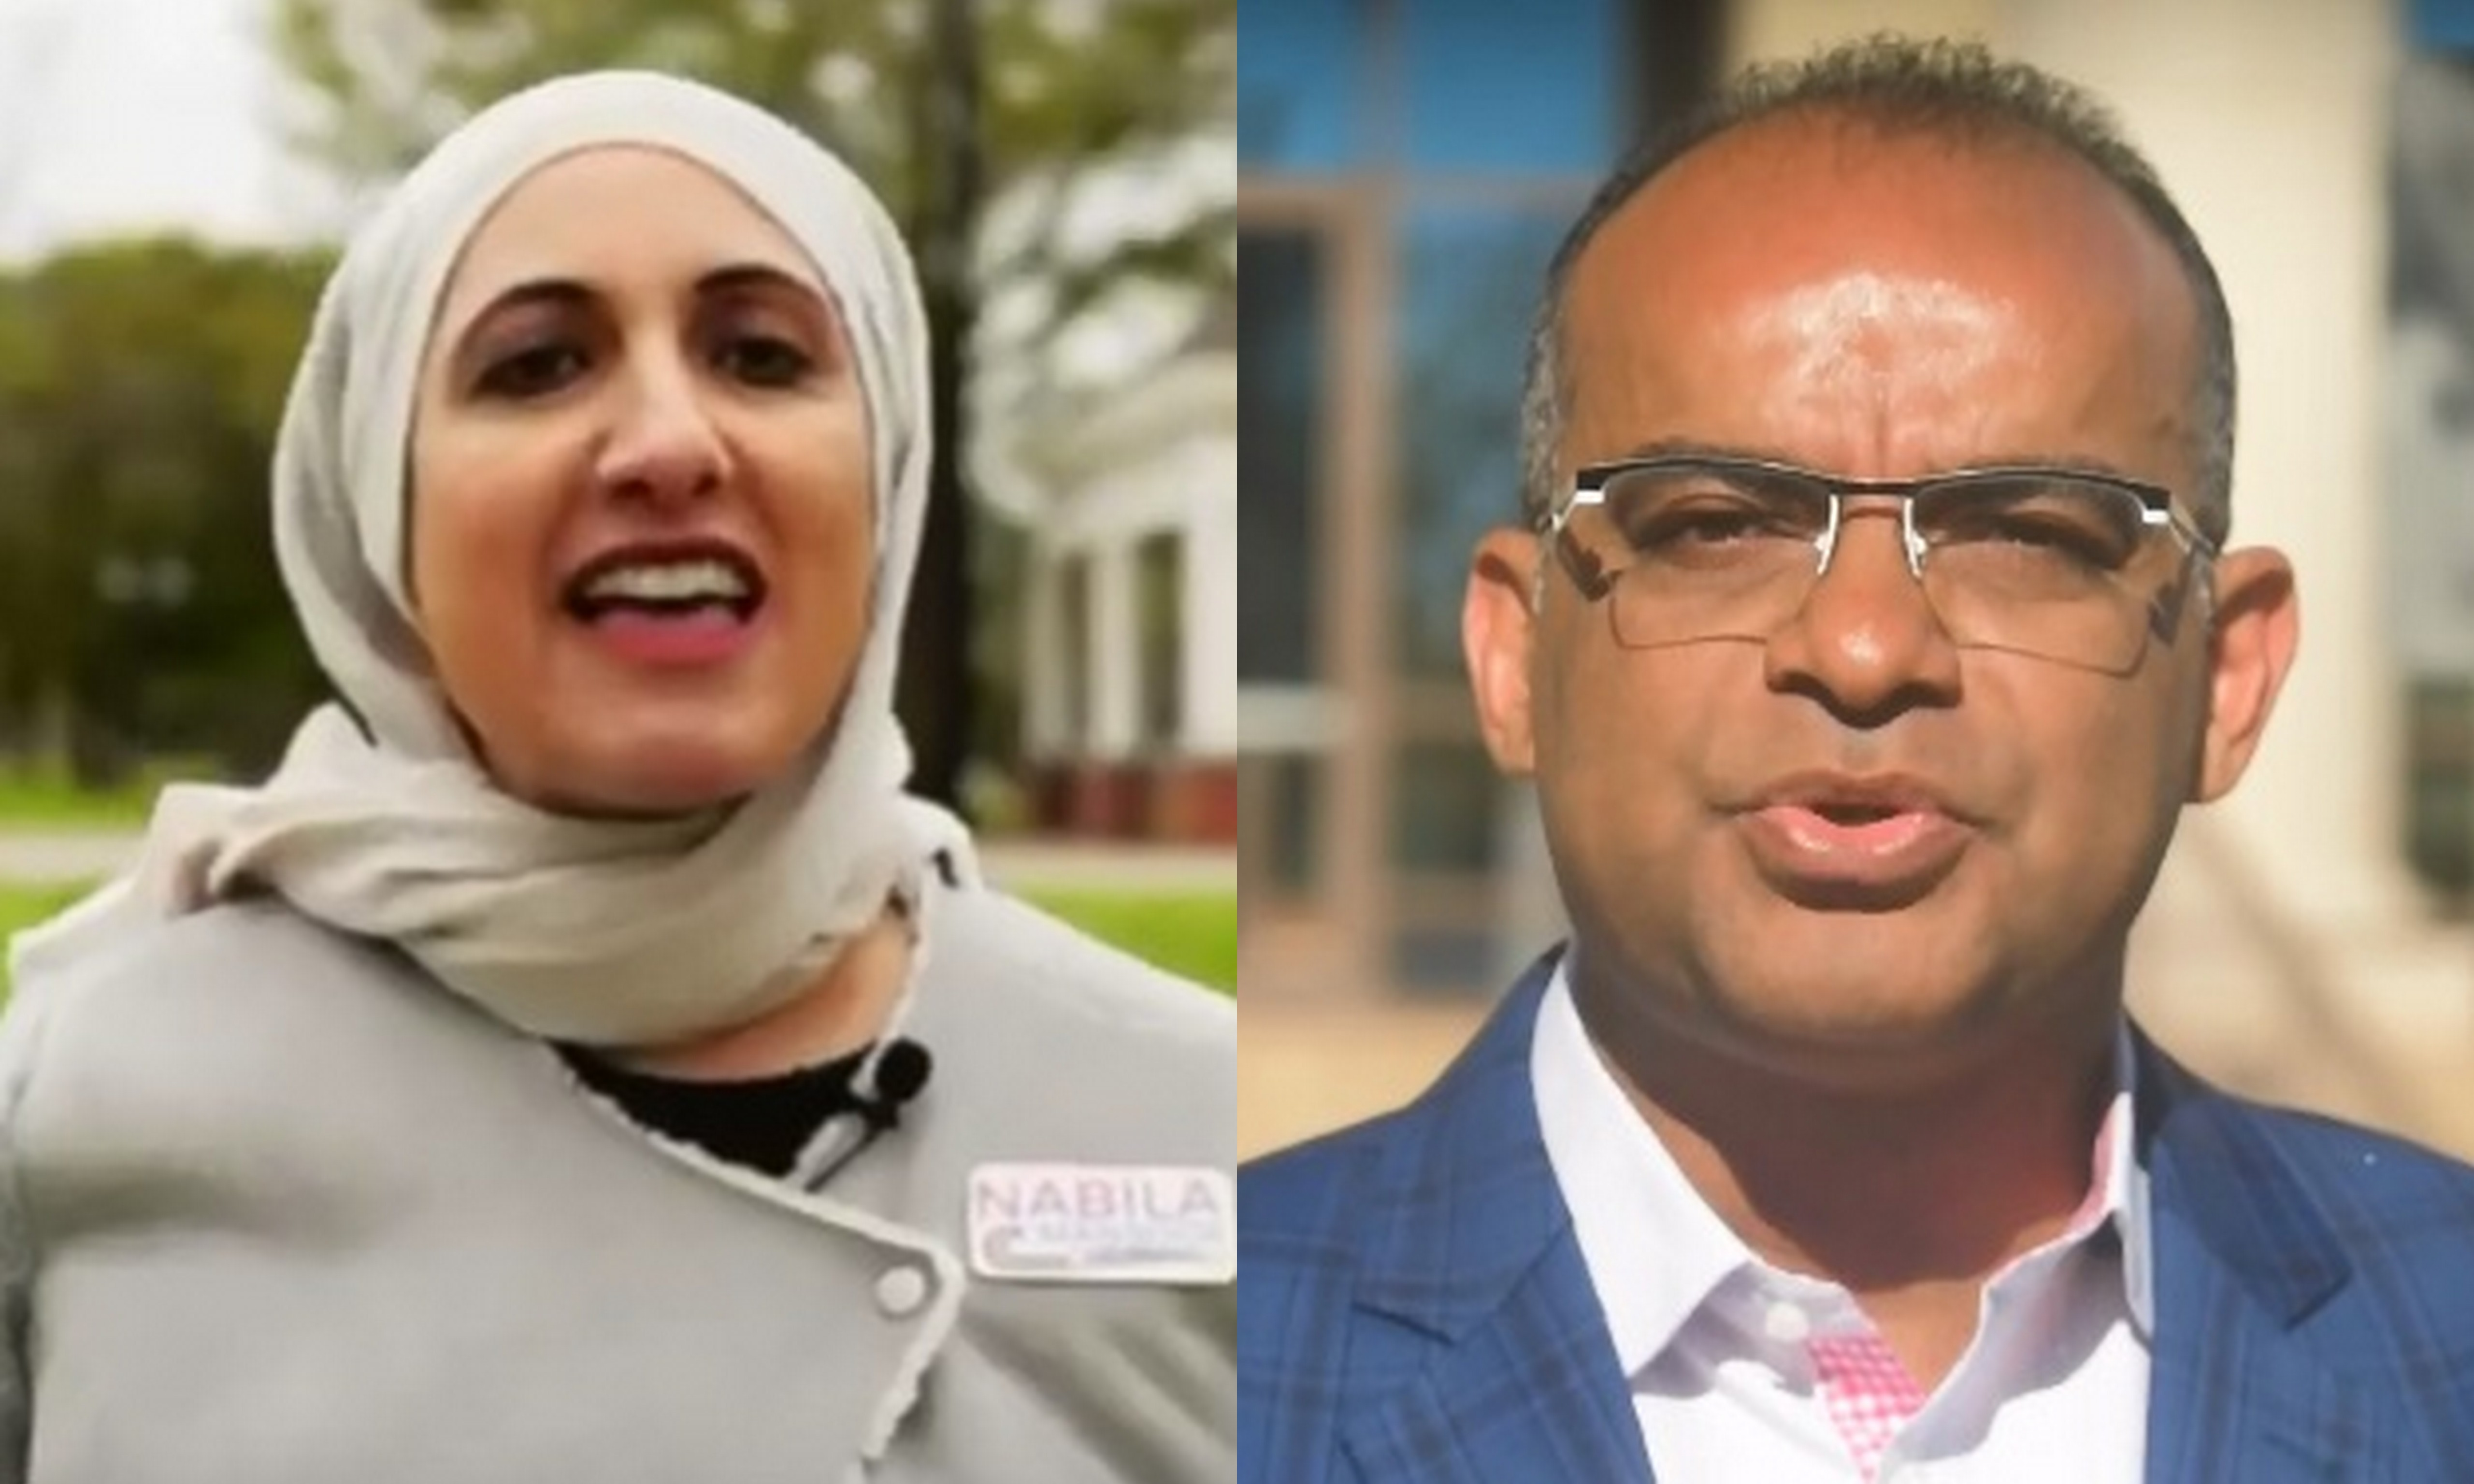 Two Muslims Head to Runoff Election in Texas